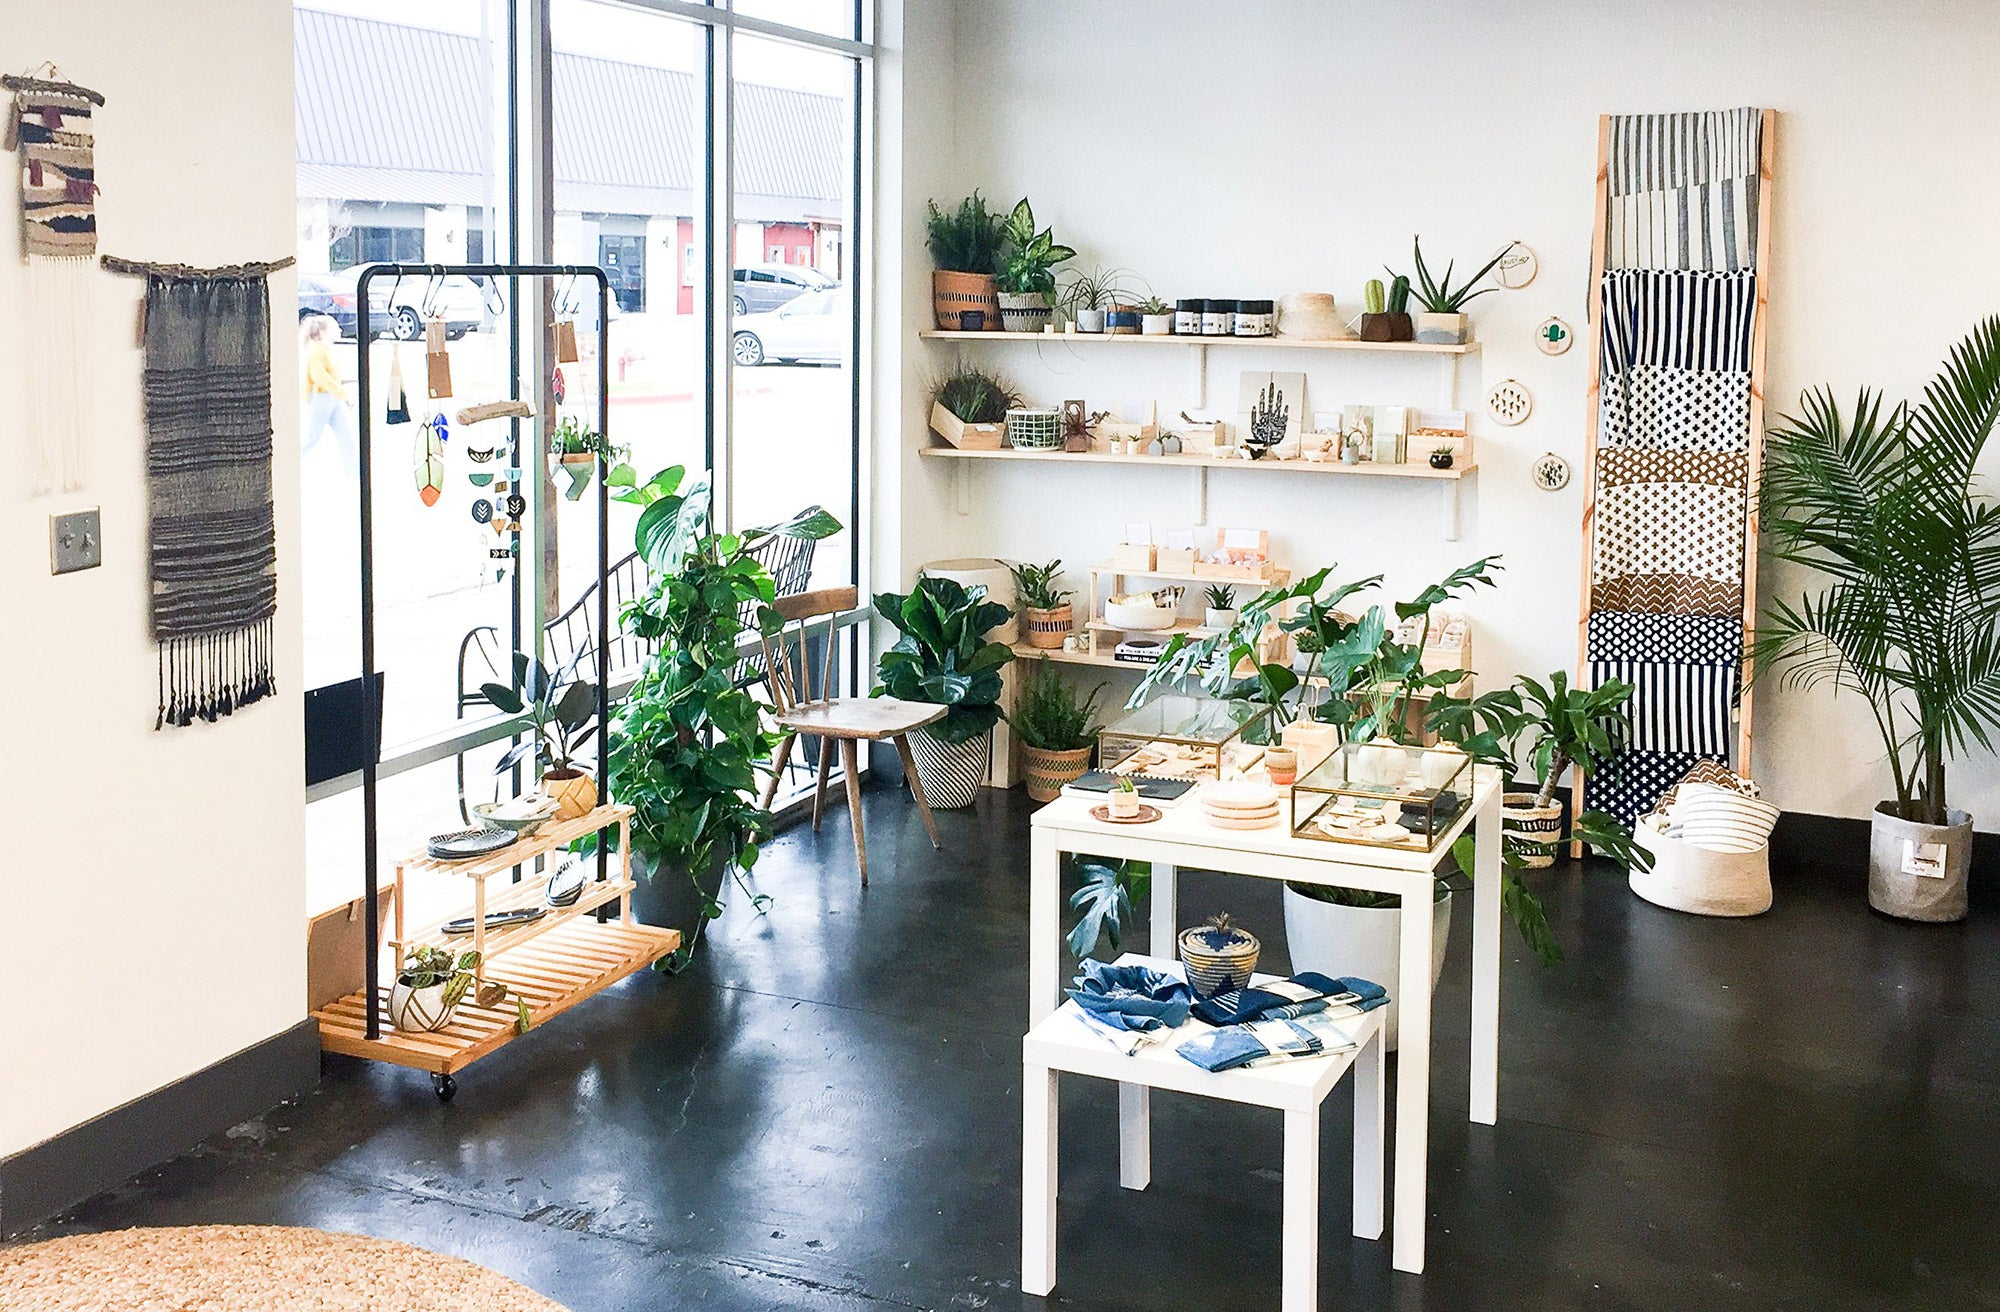 Another part of our flagship store in the Village shopping center off Anderson Lane in North-Central Austin. With events, workshops, hand-made gifts from makers around the country and world, and more.